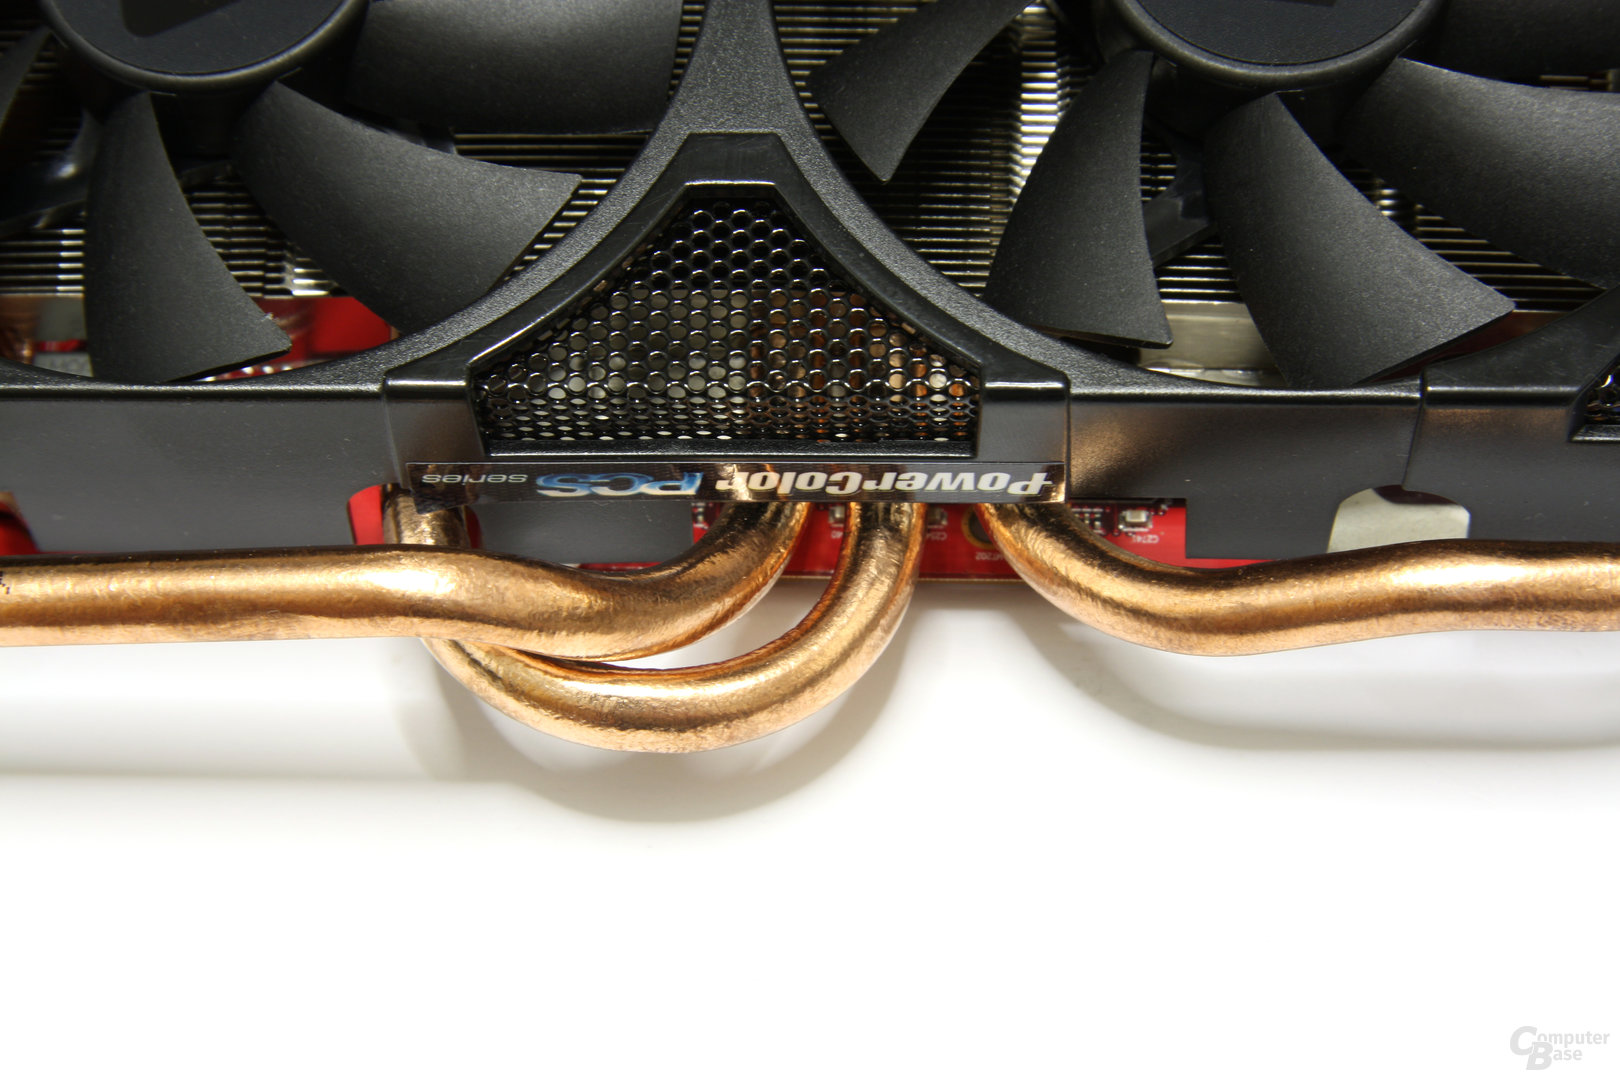 Radeon HD 6950 PCS++ Heatpipes